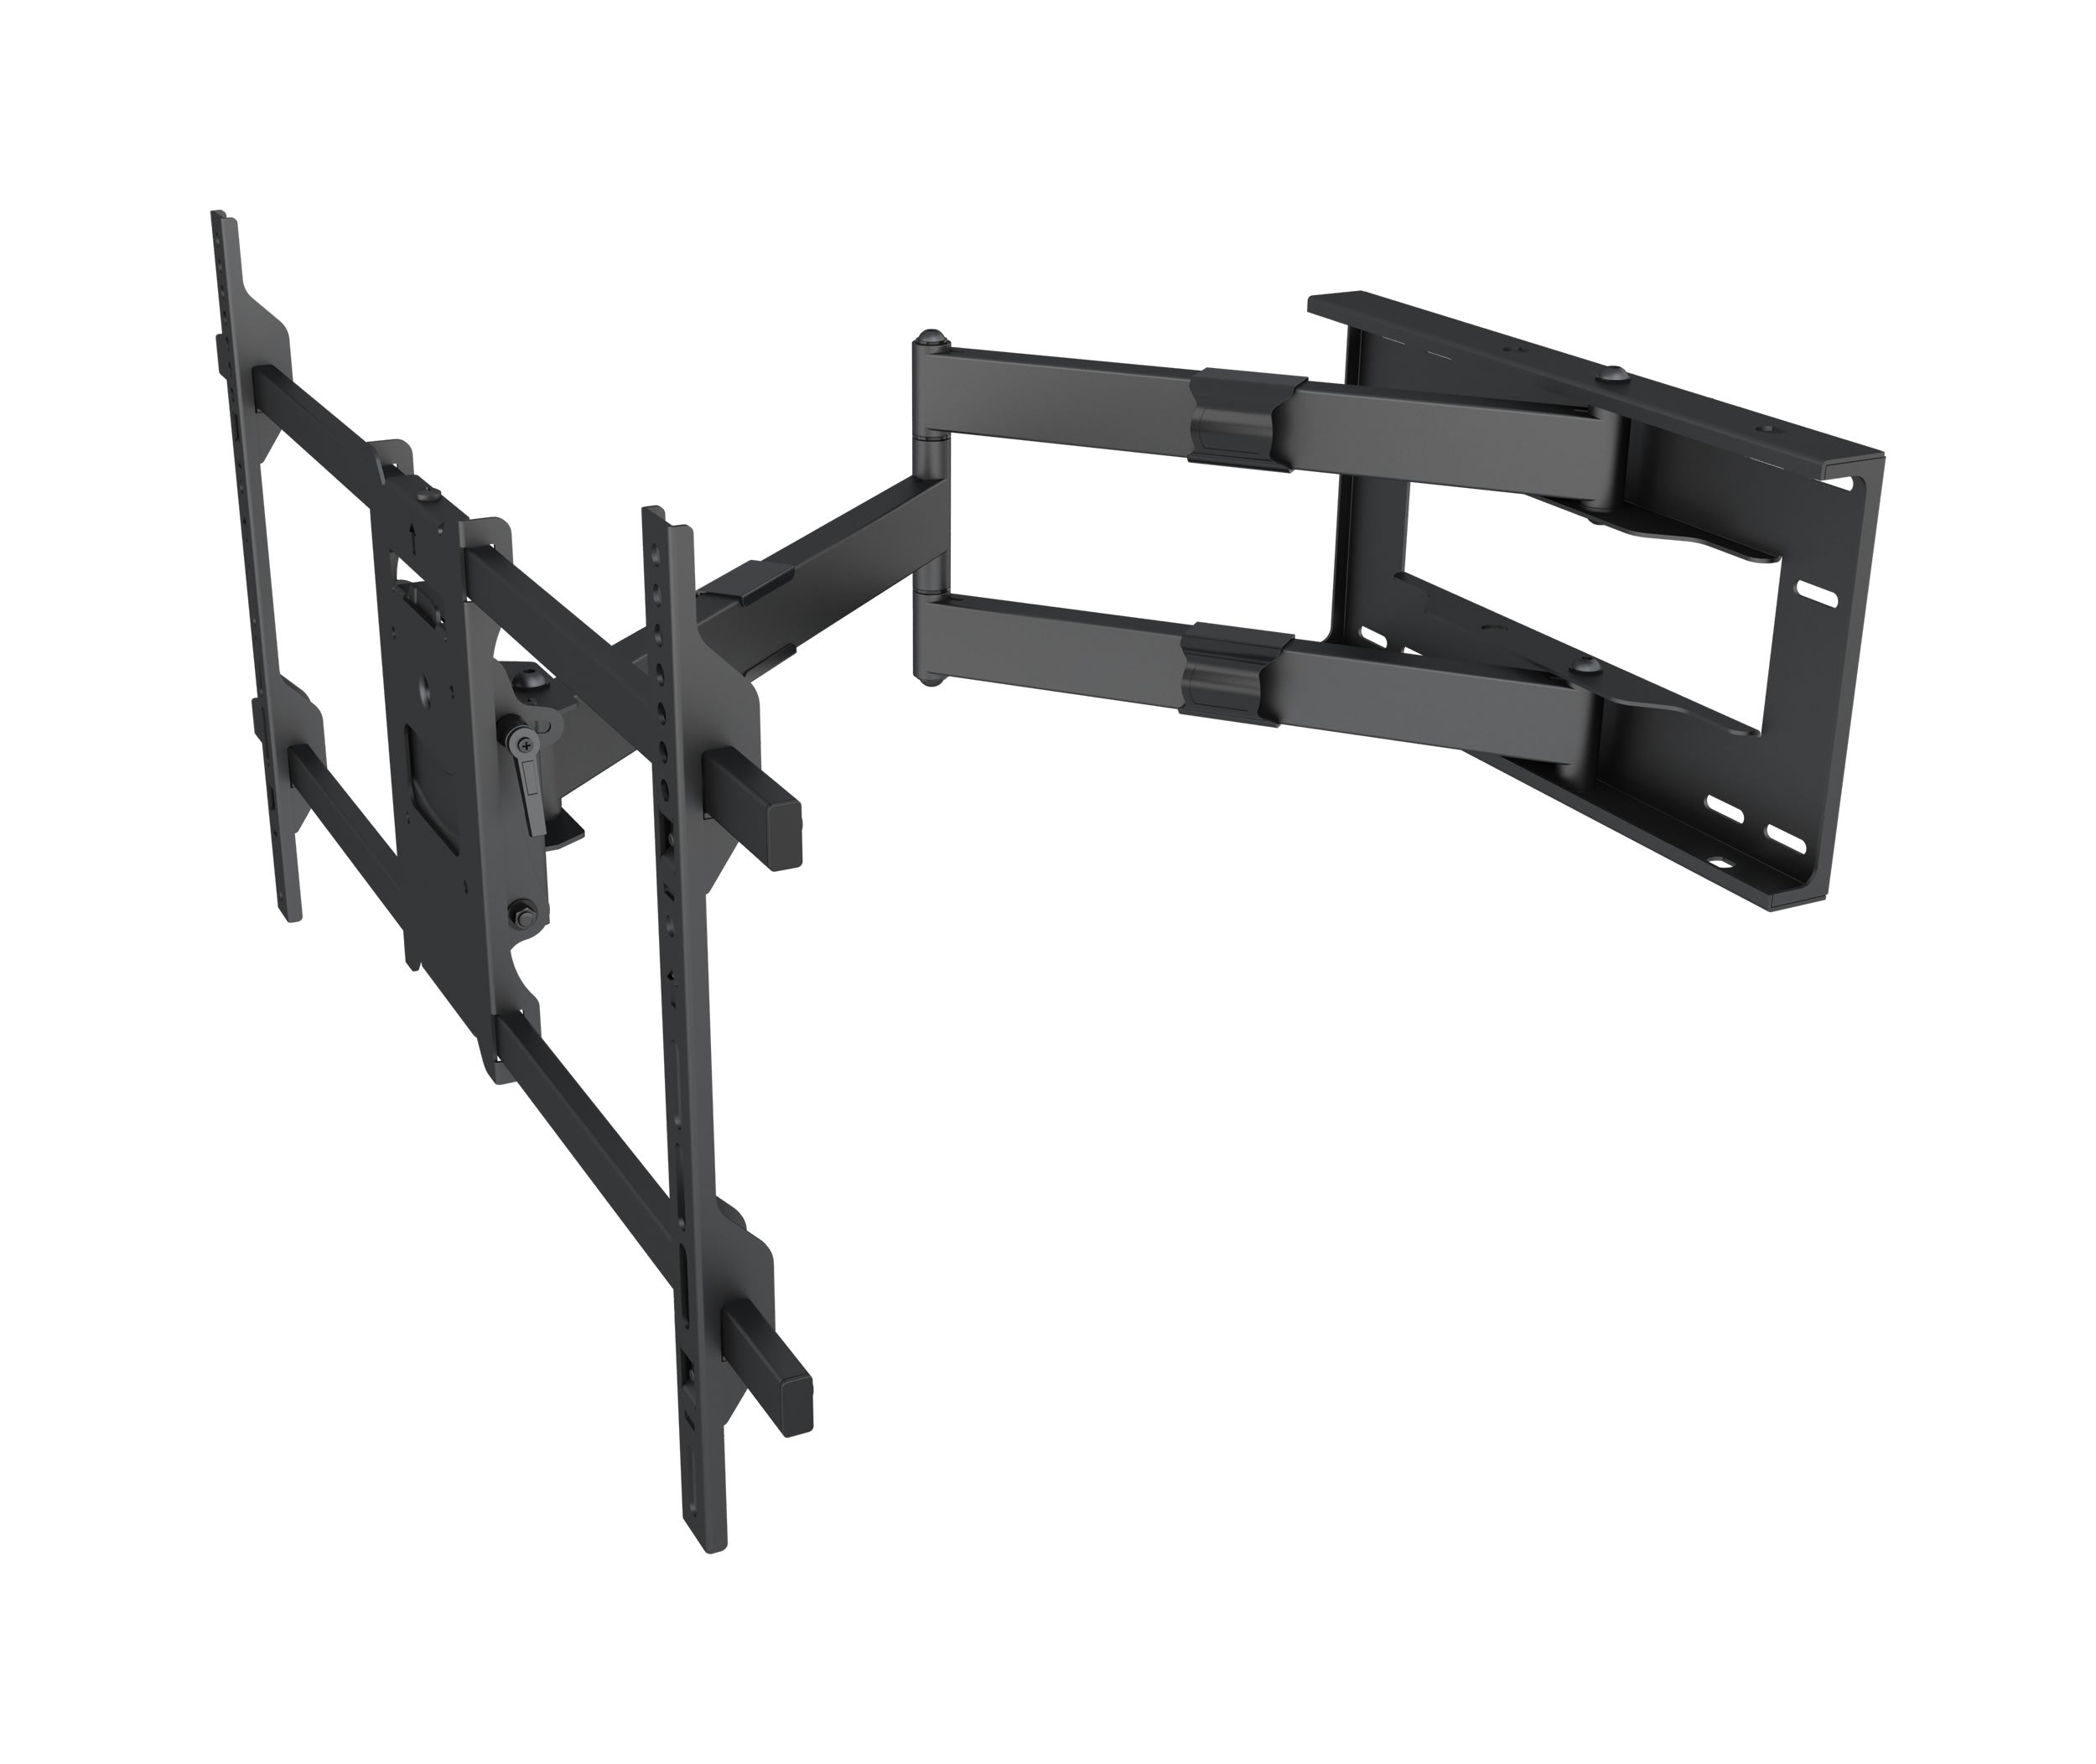 64-1152ML Full motion Flat LCD LED TV / Panels Wall Mount Slimline Bracket for 42-90 inches Screens